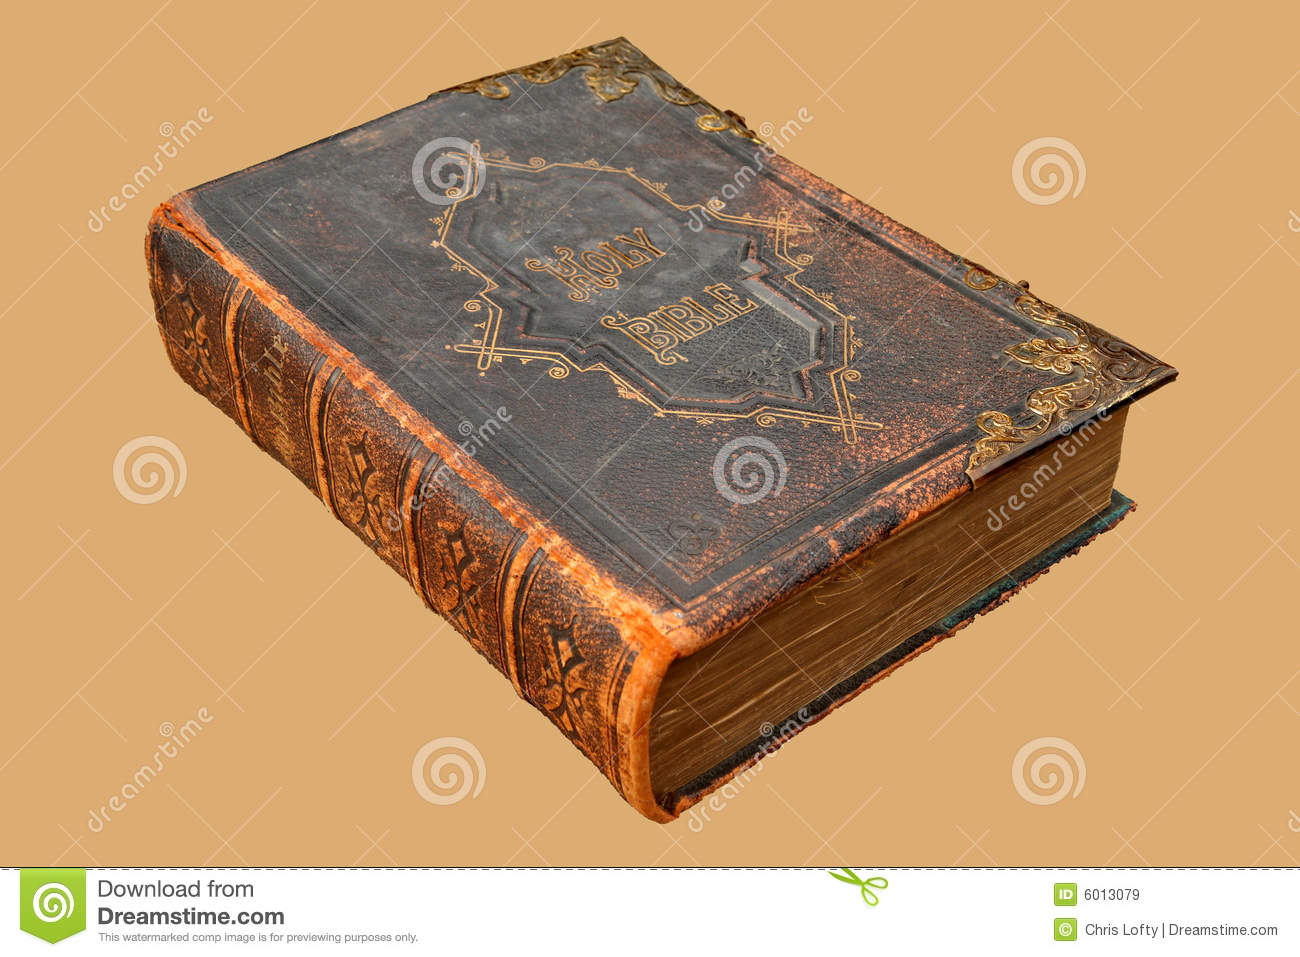 Vintage Leather Look Jeremiah Verse Bible Book Cover Large: Ancient Leather Bound Holy Bible Stock Image